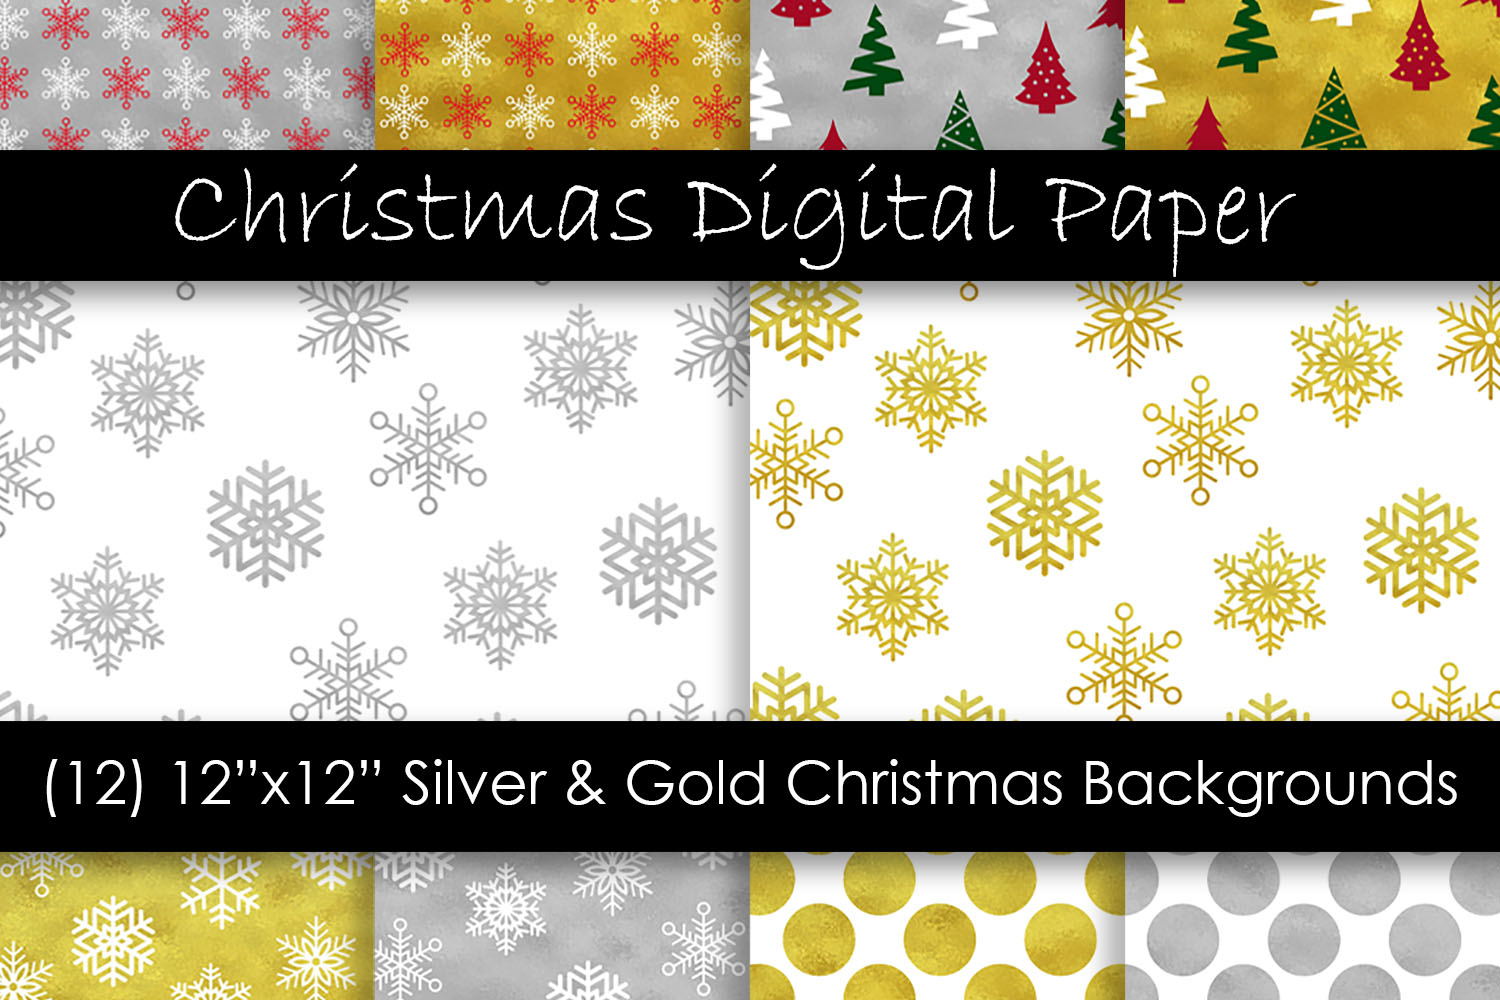 Gold & Silver Christmas Digital Paper - Snow Backgrounds example image 1